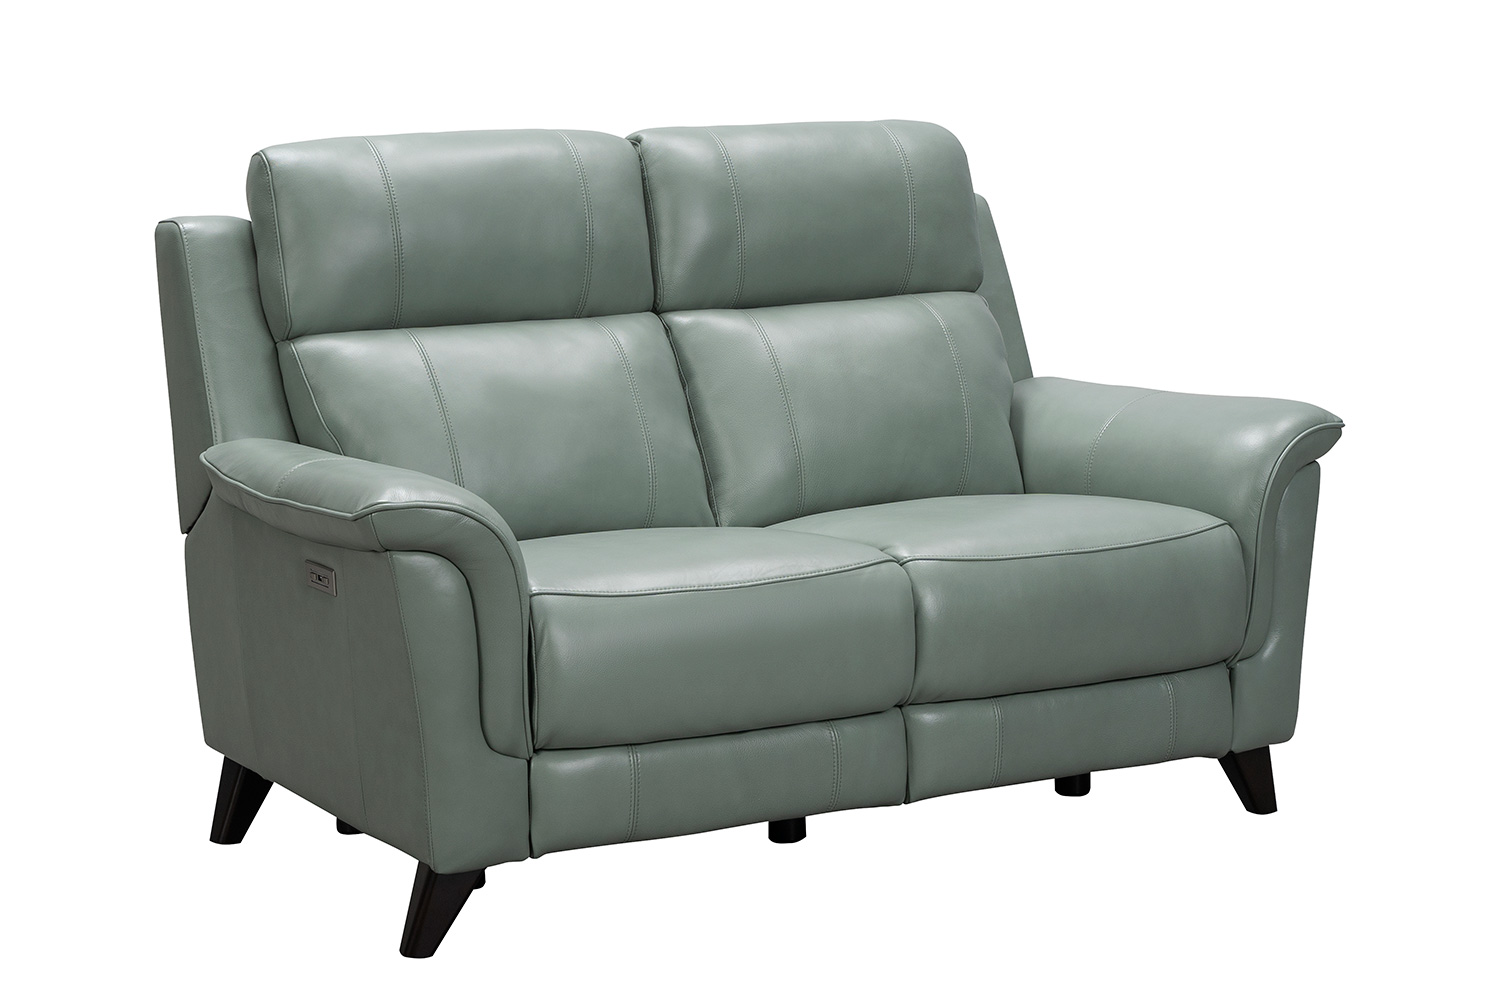 Barcalounger Kester Power Reclining Loveseat with Power Head Rests - Lorenzo Mint/Leather match